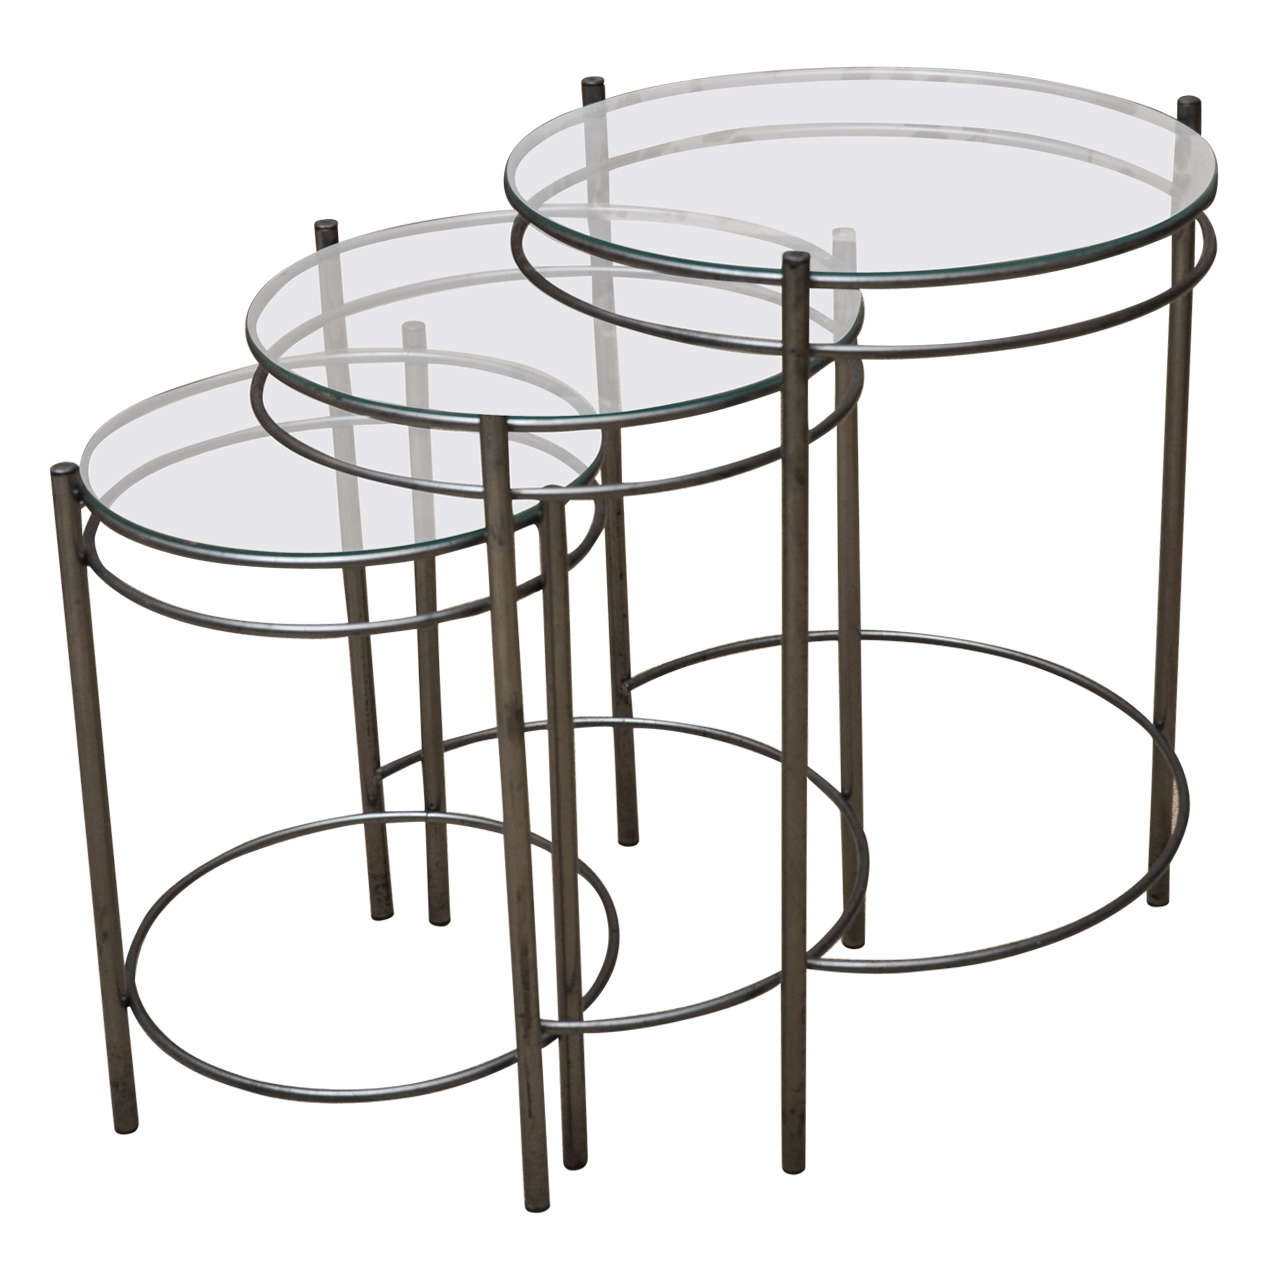 Set of three metal and glass round nesting tables at stdibs